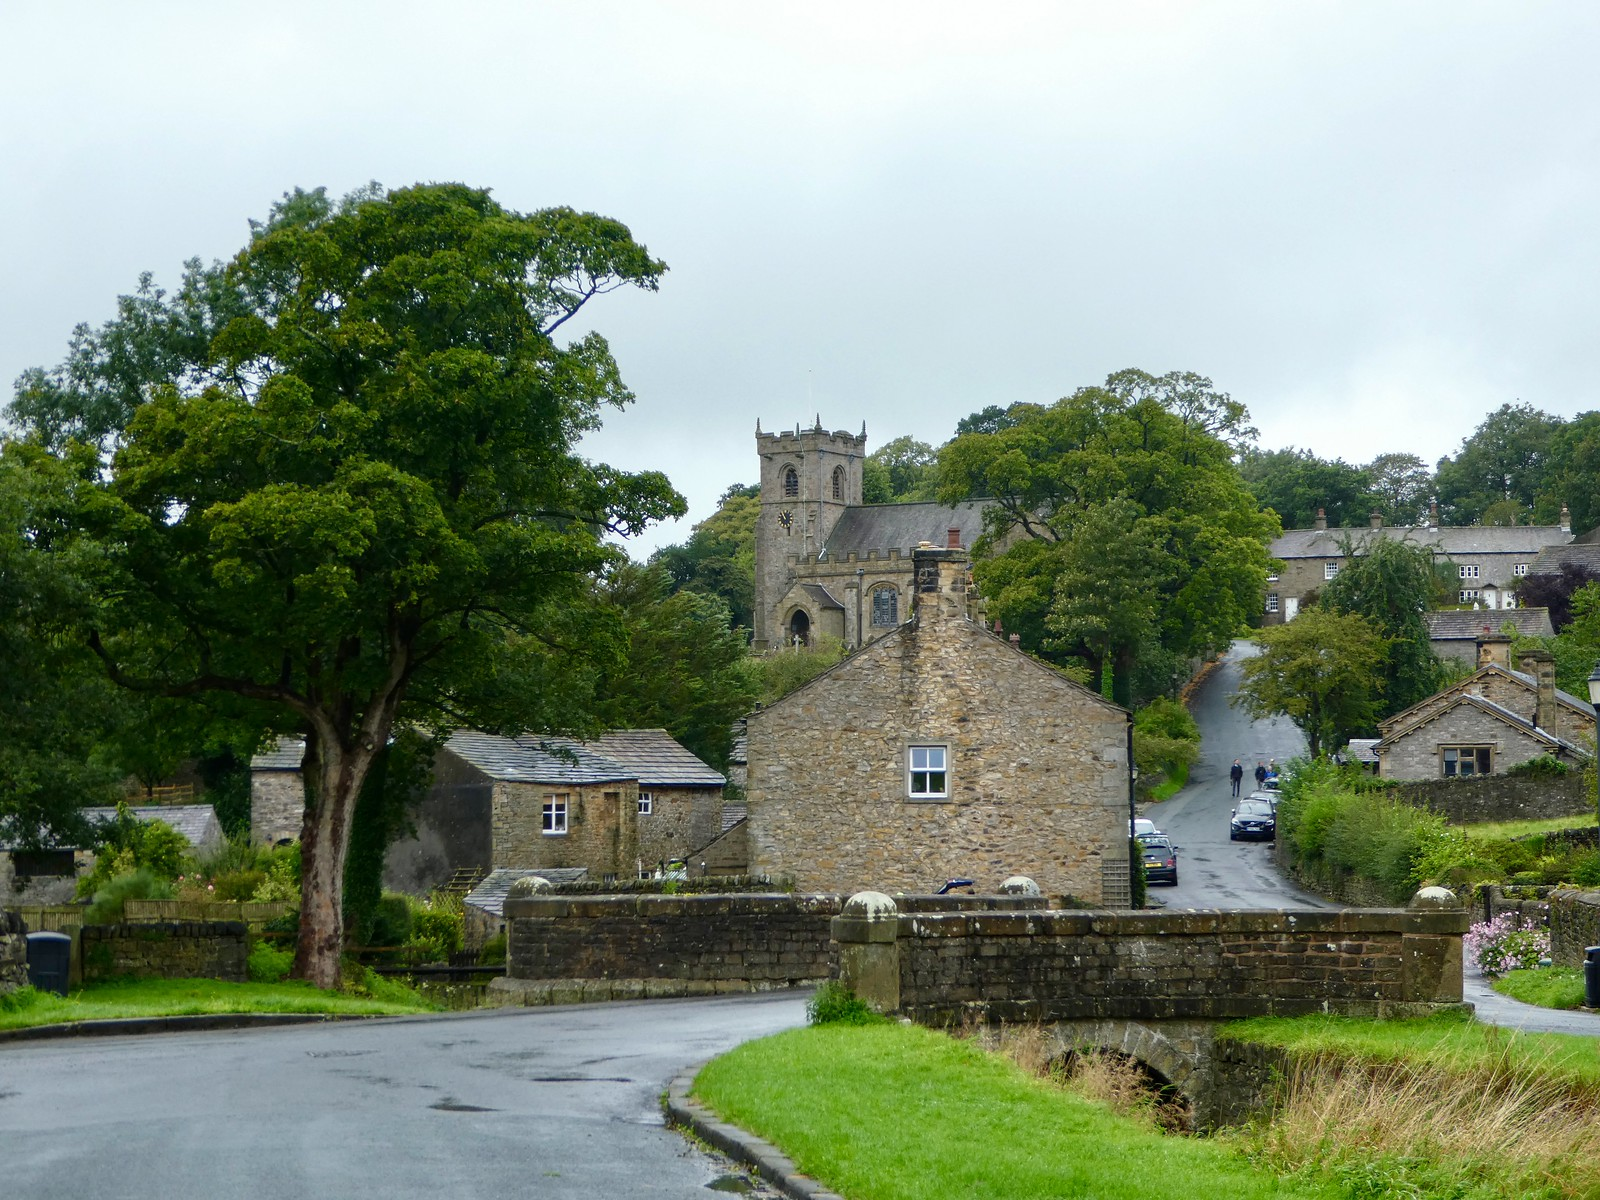 Downham, near Clitheroe